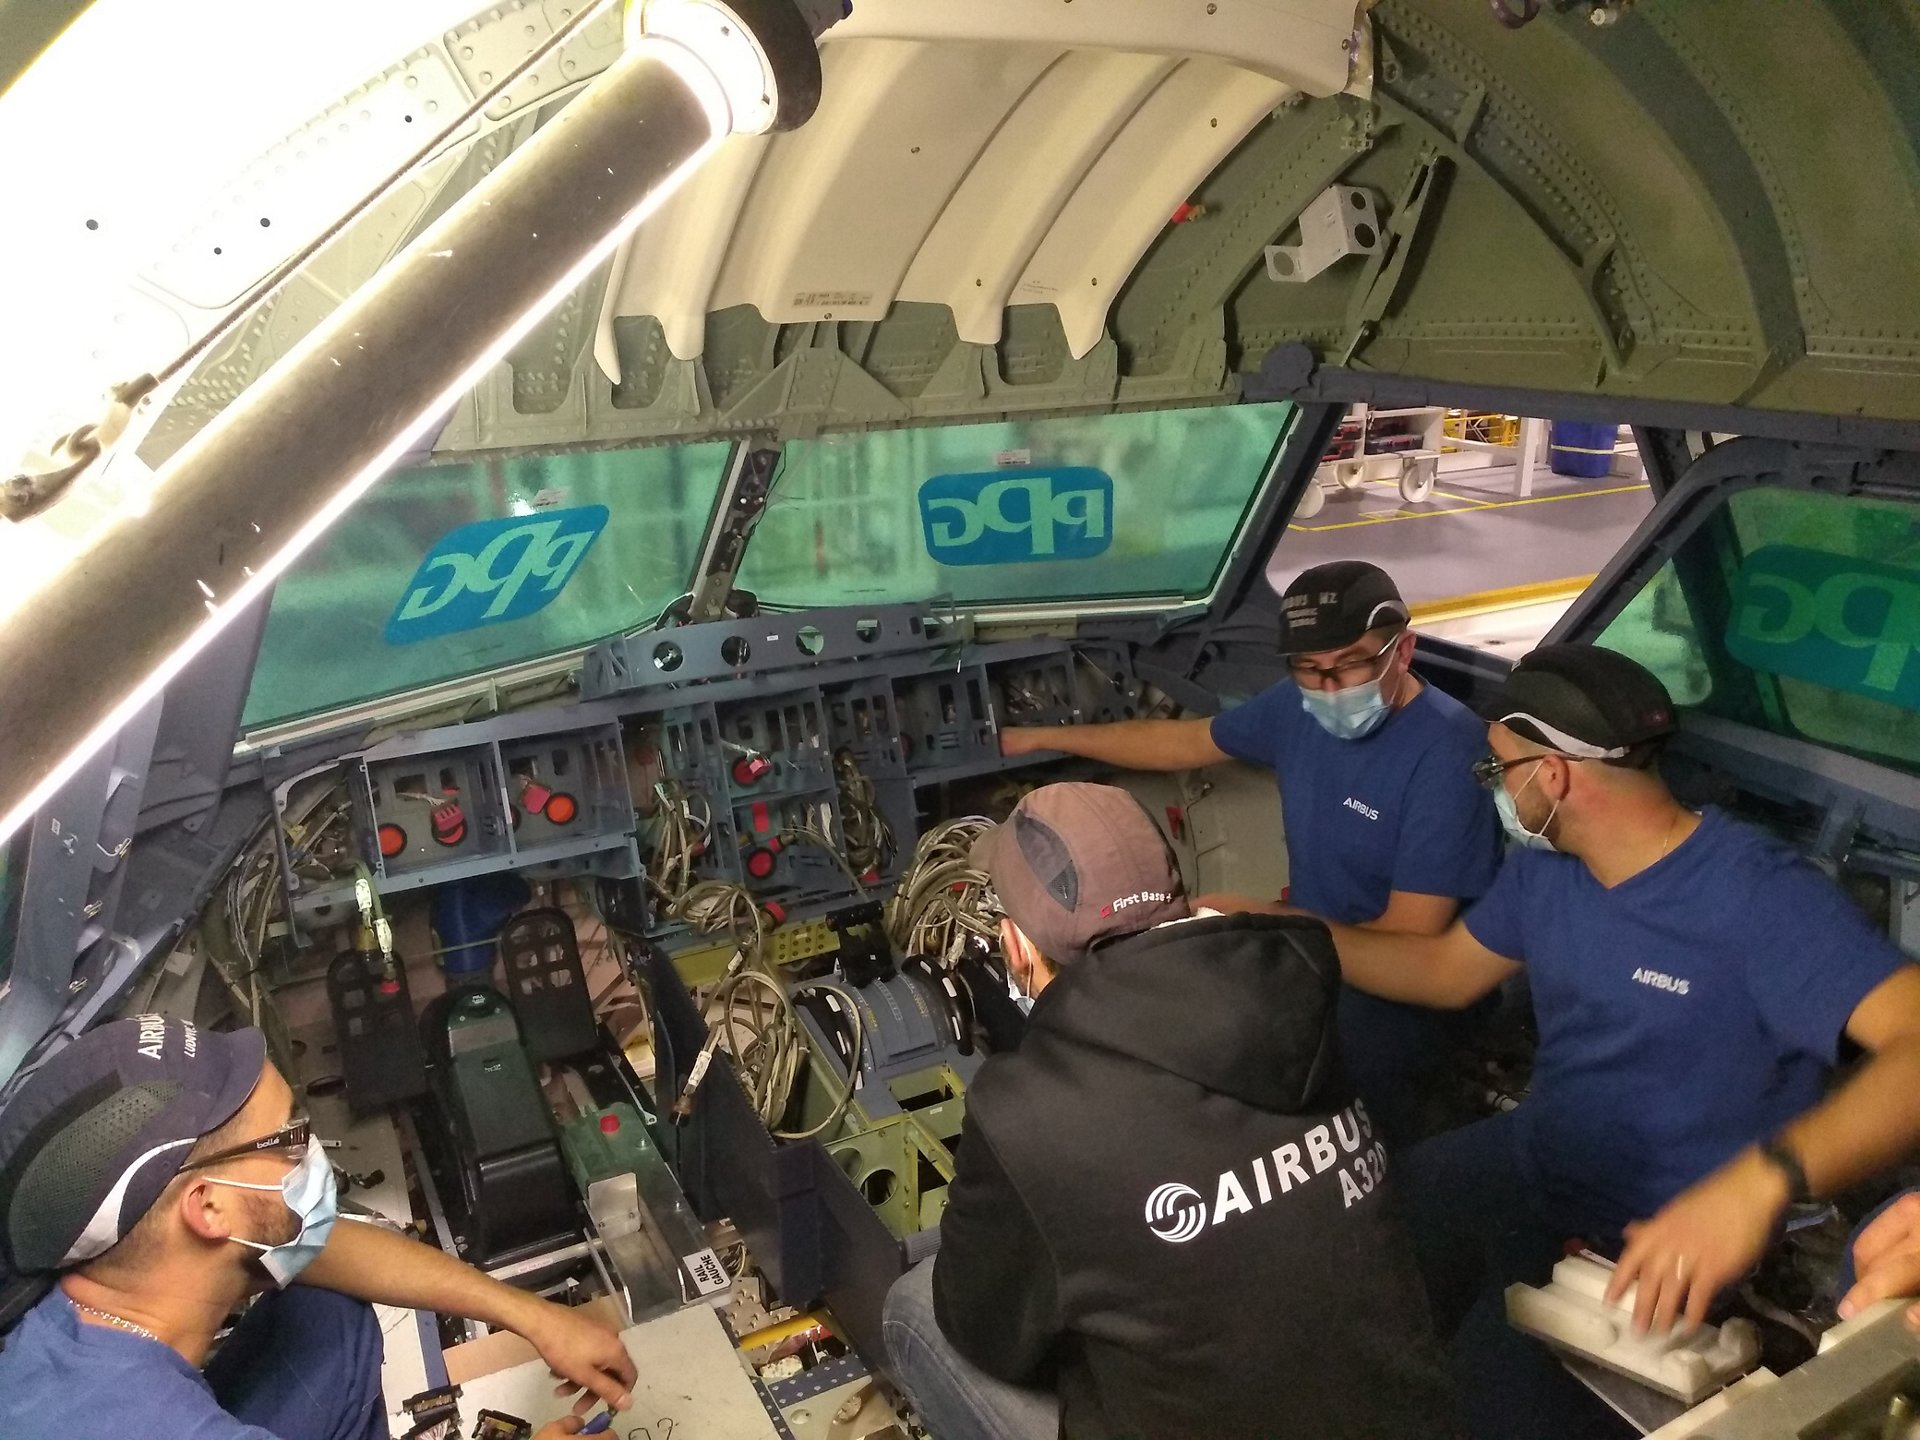 The PMU in Saint Nazaire was also used to verify installation of the new Main Instrument Panel (MIP) structure.